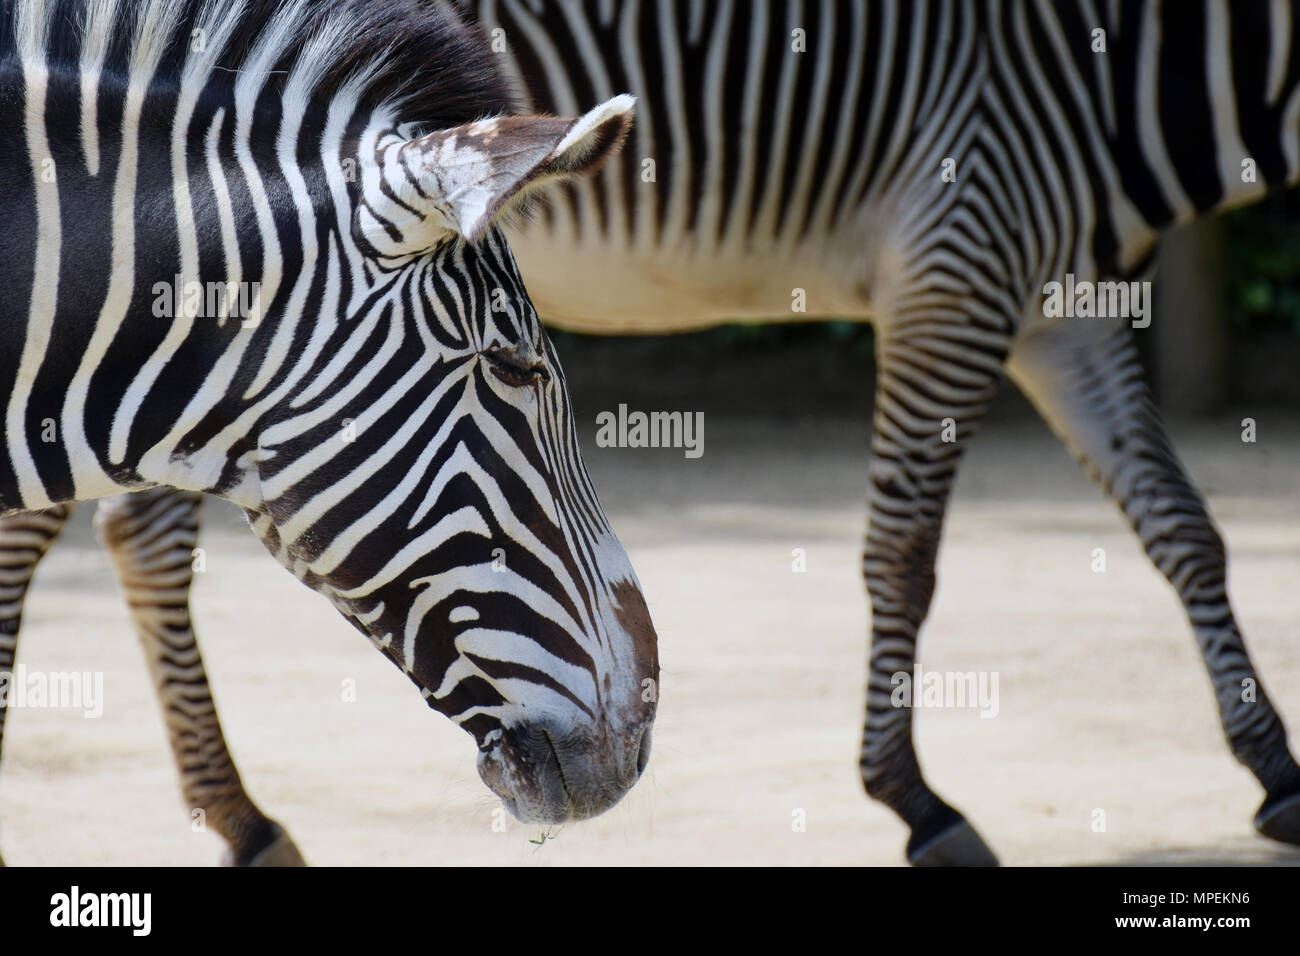 Grevy's Zebras (Equus grevyi), also known as the imperial zebra. - Stock Image